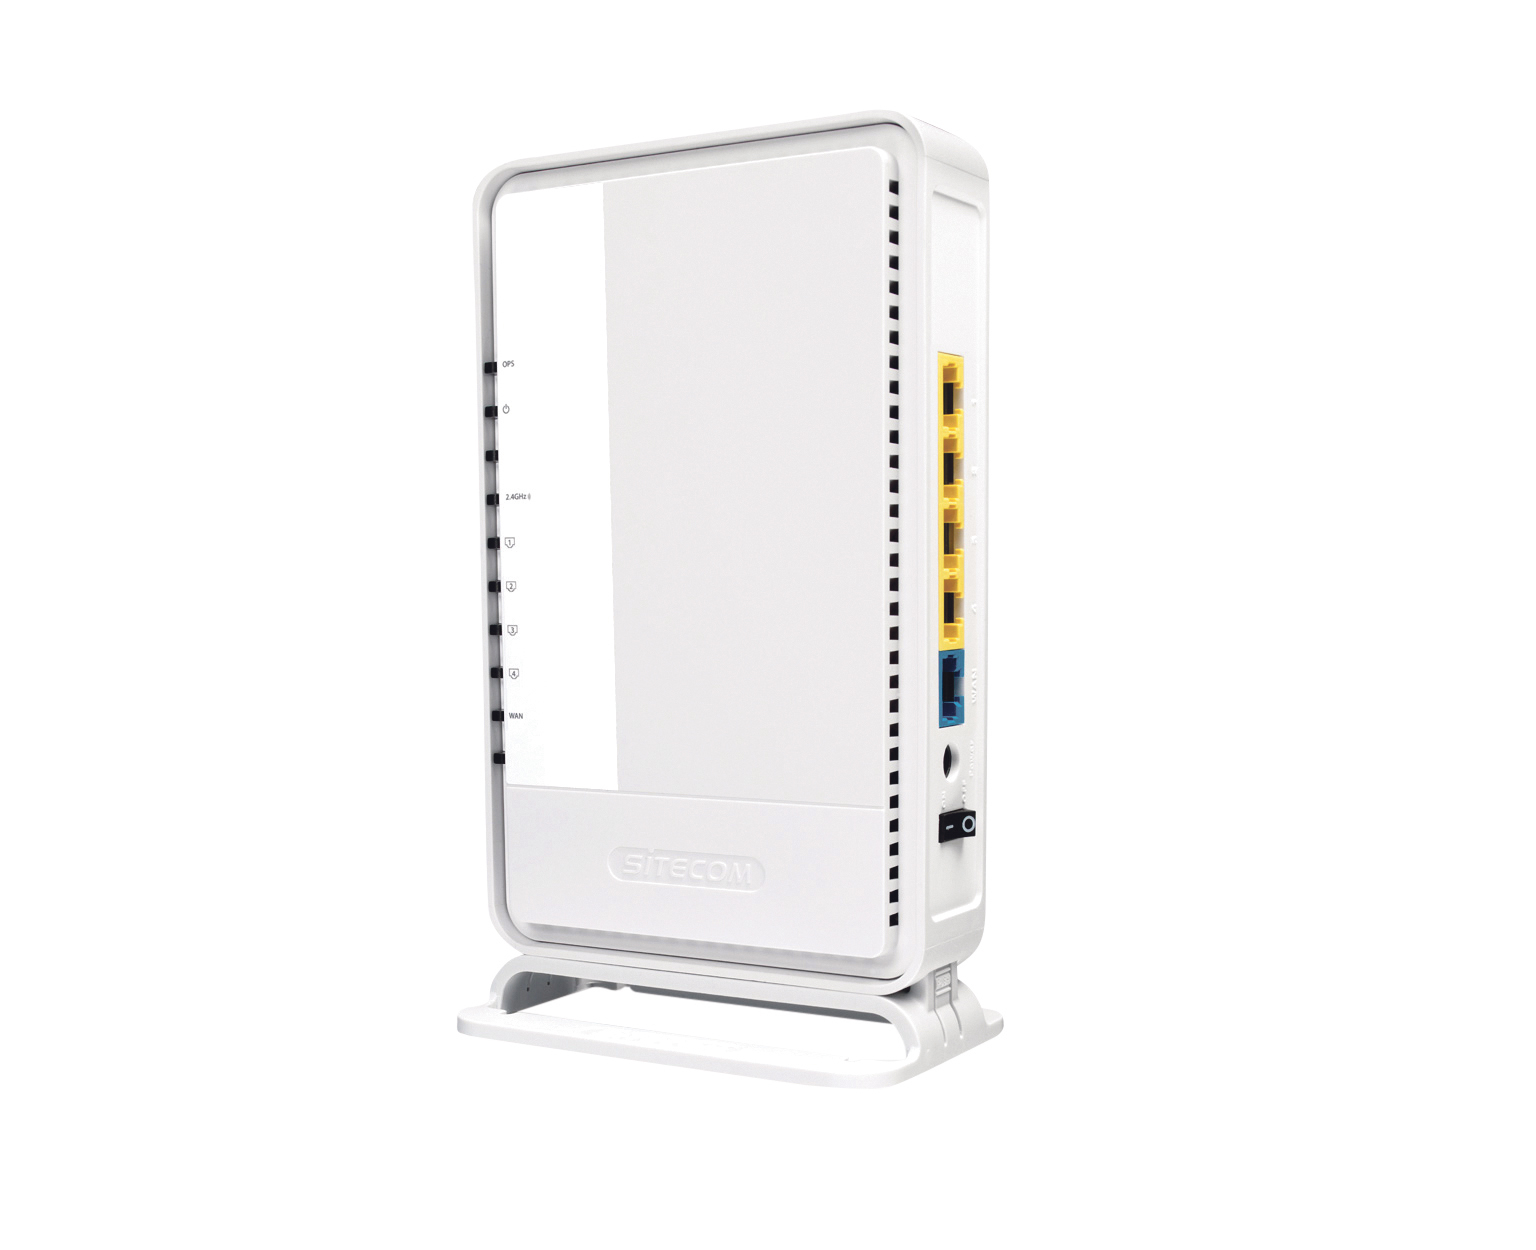 Sitecom Wireless Router WLR-4004